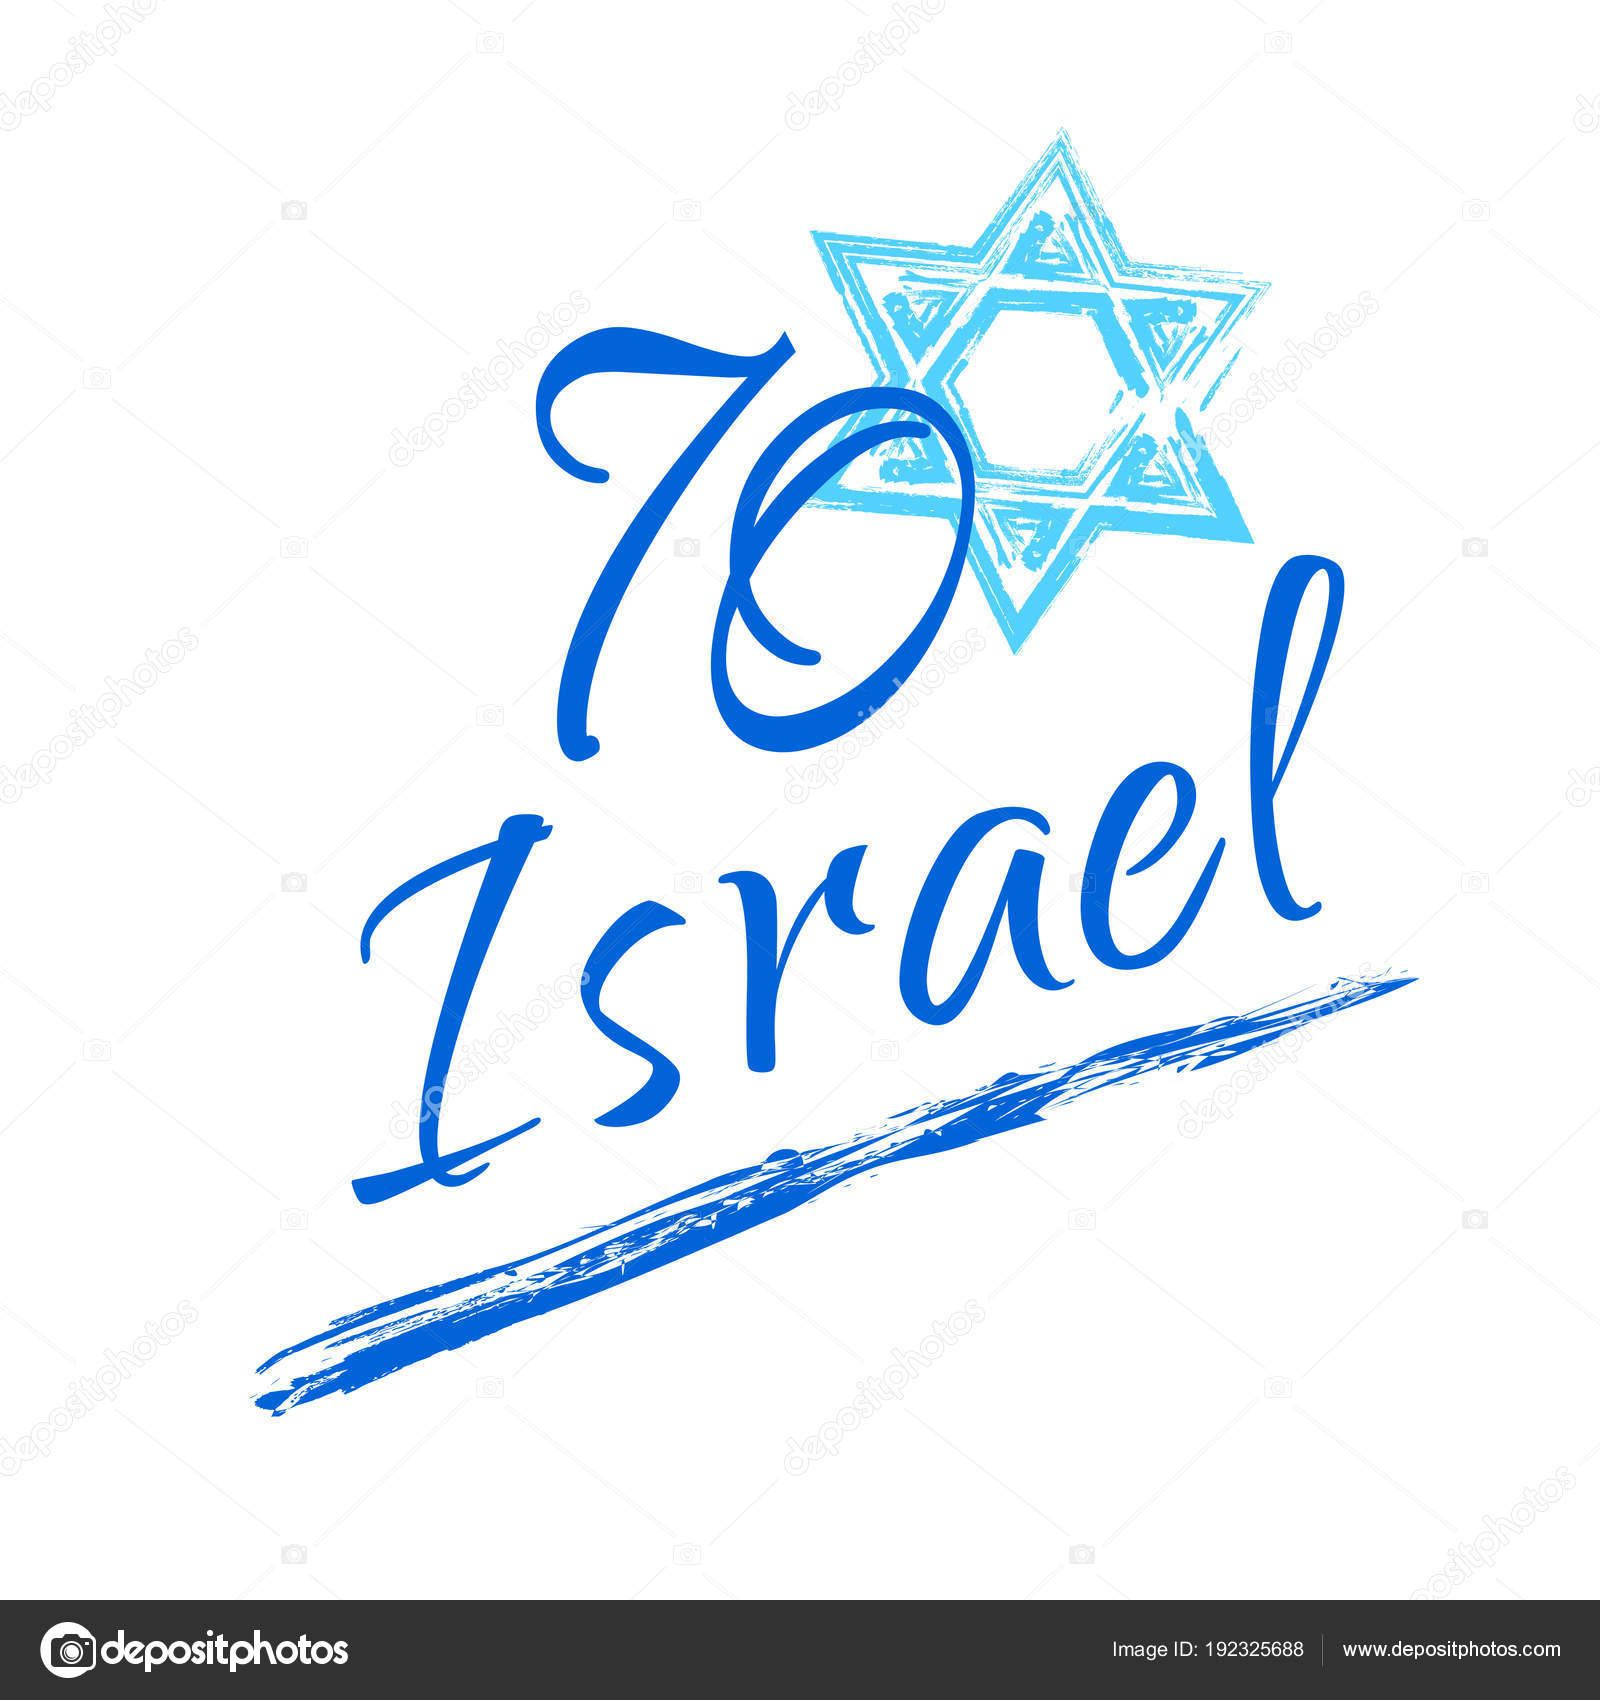 Download - Israel Anniversary Independence Day 2018 Calligraphy Text Festive Greeting Poster — Stock Illustration